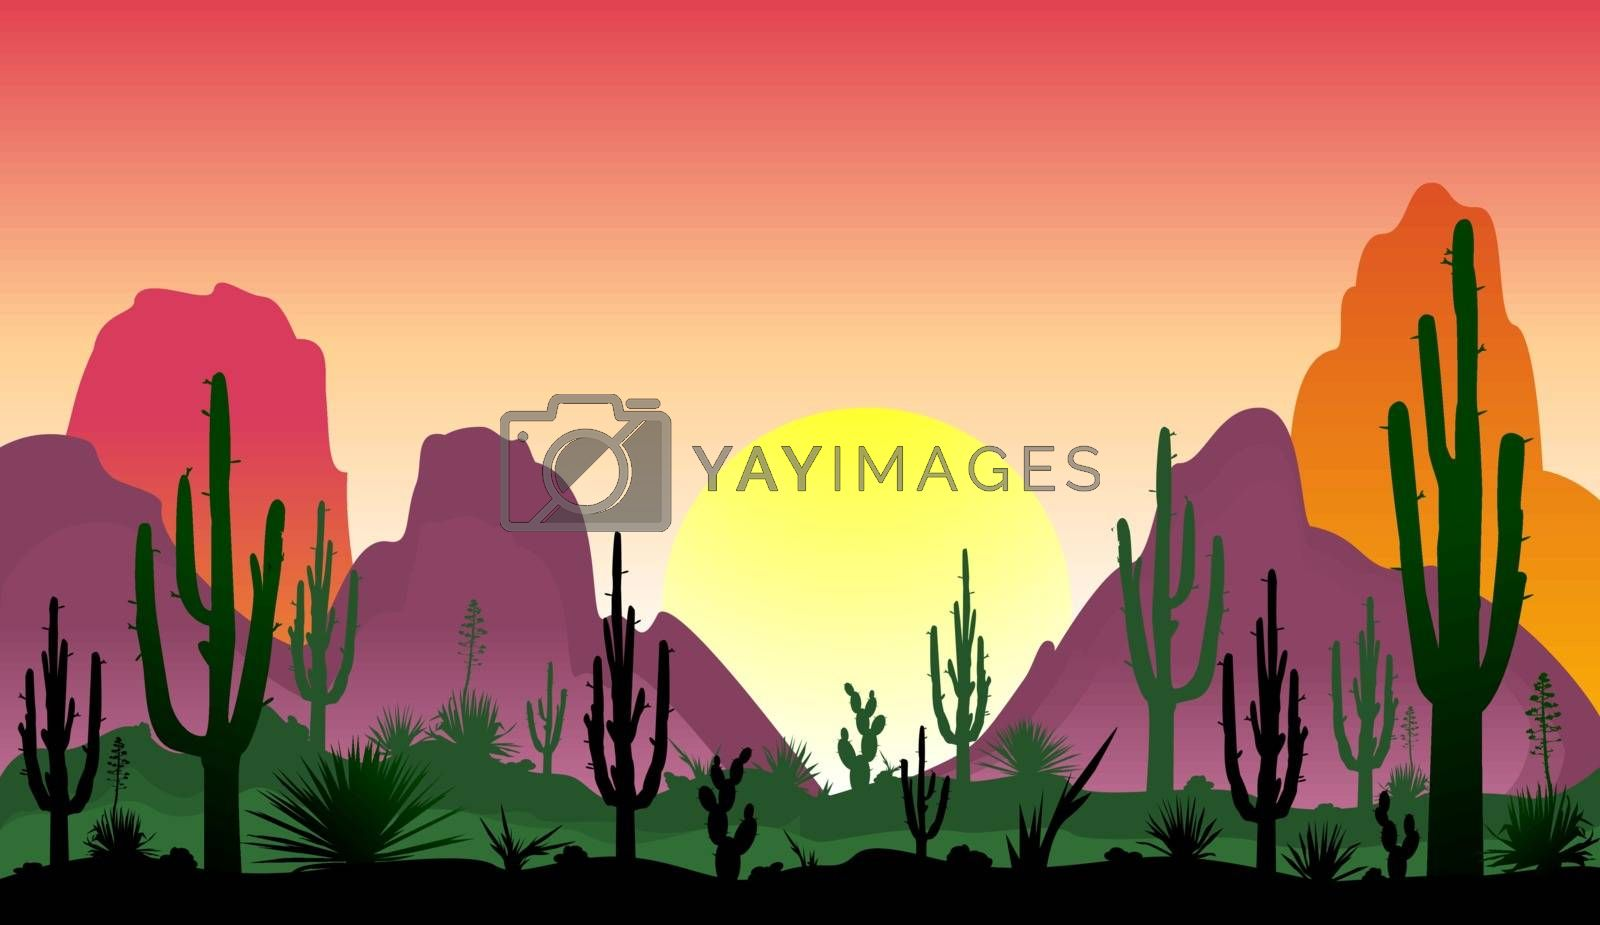 Stony desert with cacti by liolle